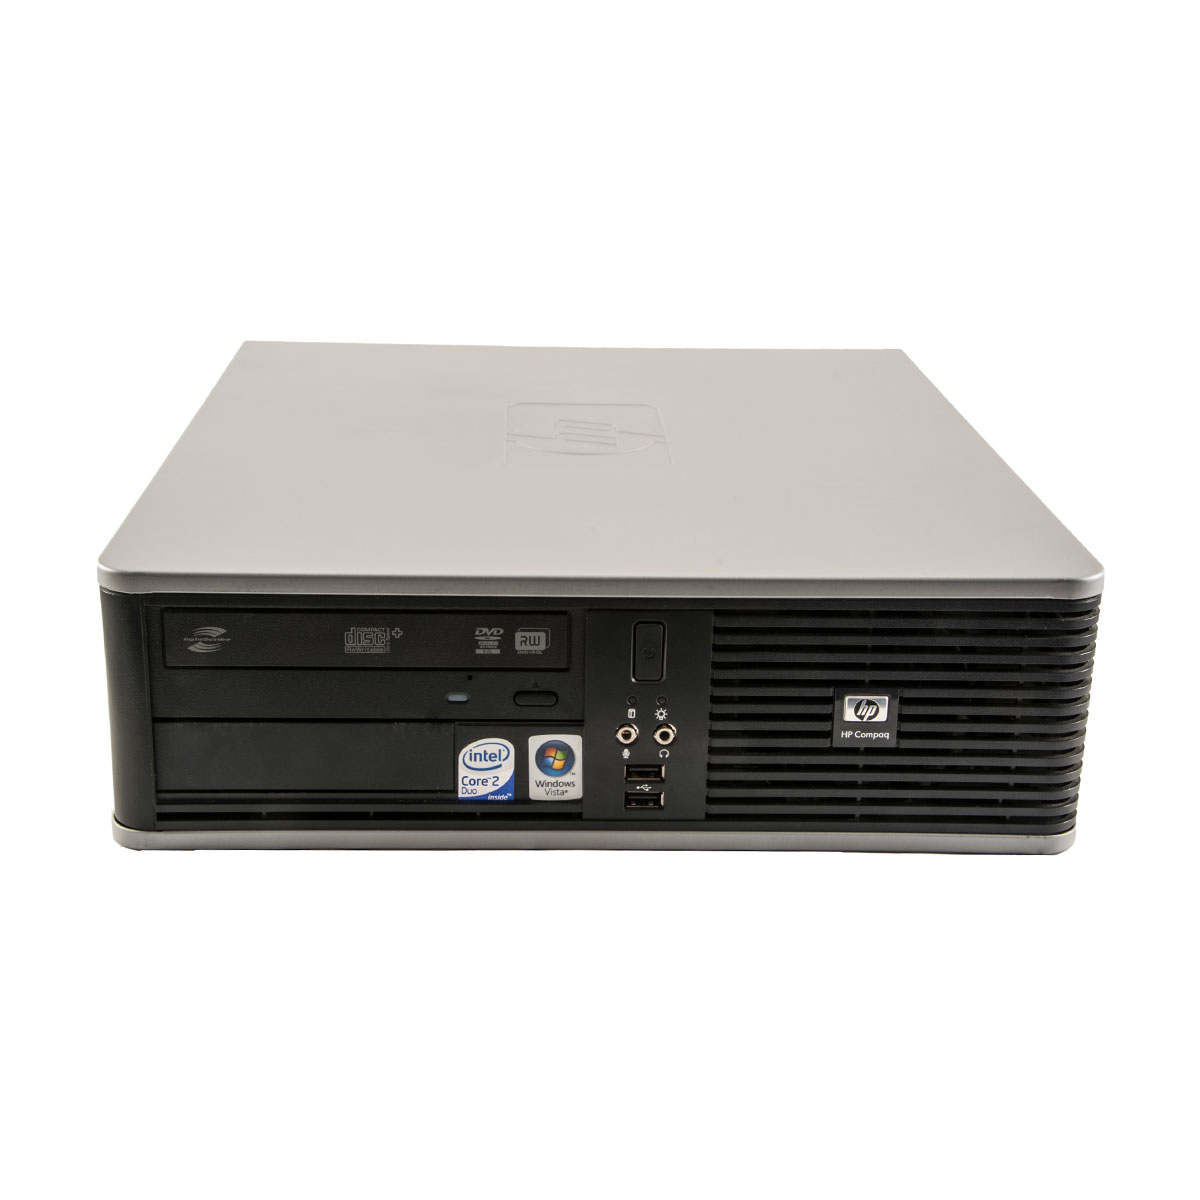 Hp Dc7900 Intel C2d E8500 3.16 Ghz 4 Gb Ddr 2 160 Gb Hdd Dvd-rom Sff